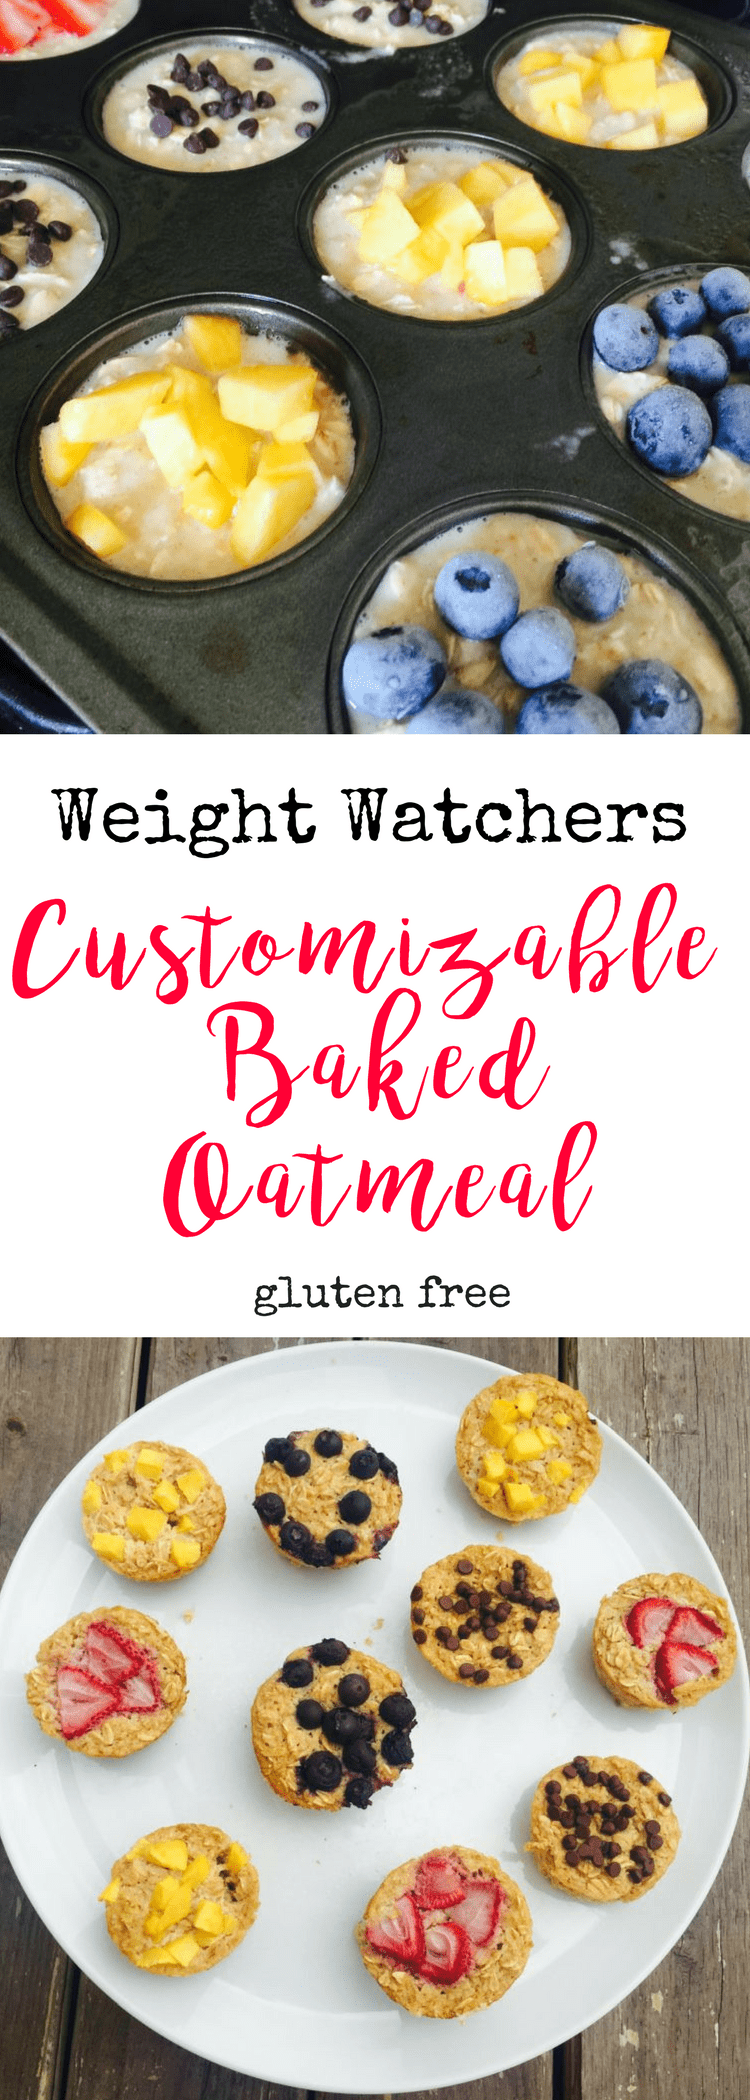 Weight Watchers Customizable Baked Oatmeal | Confessions of a Fit Foodie